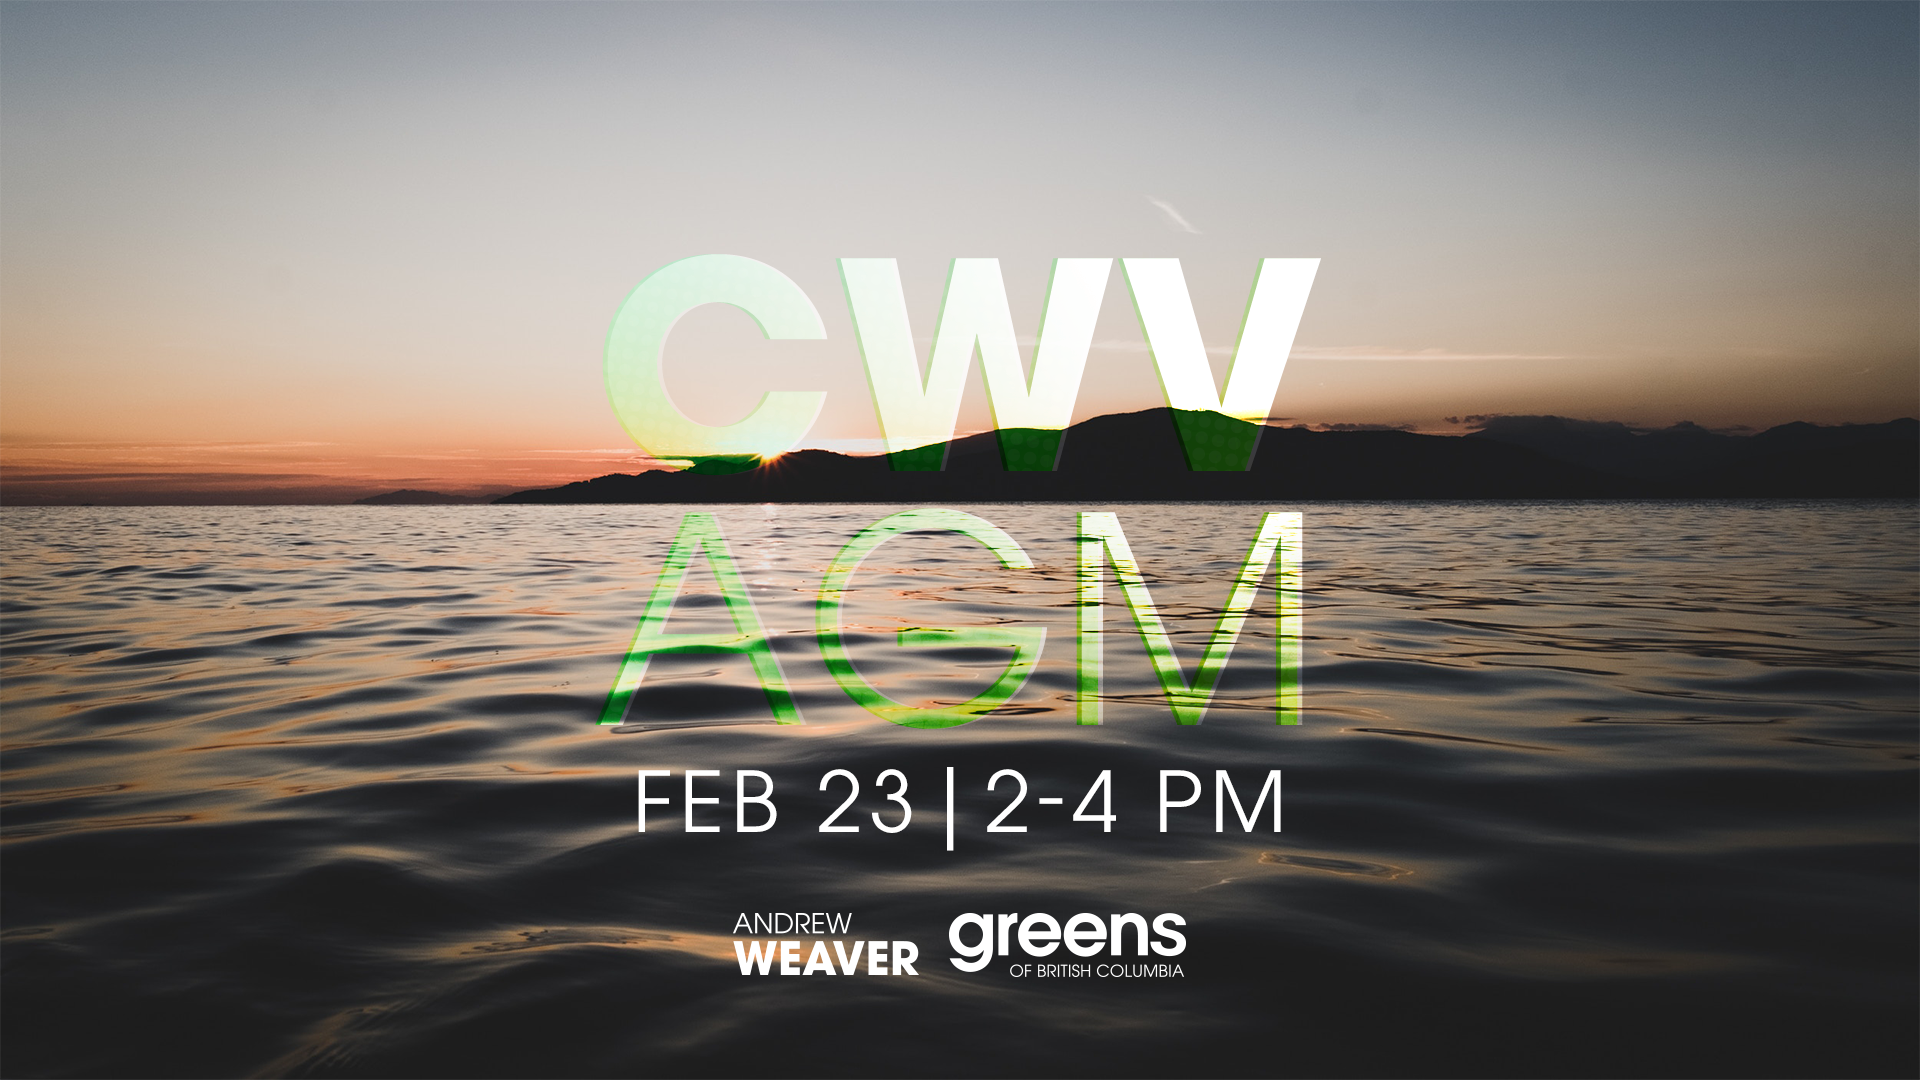 190122-CWV-AGM-FB-EventFacebook-Event-Photo_(1).png